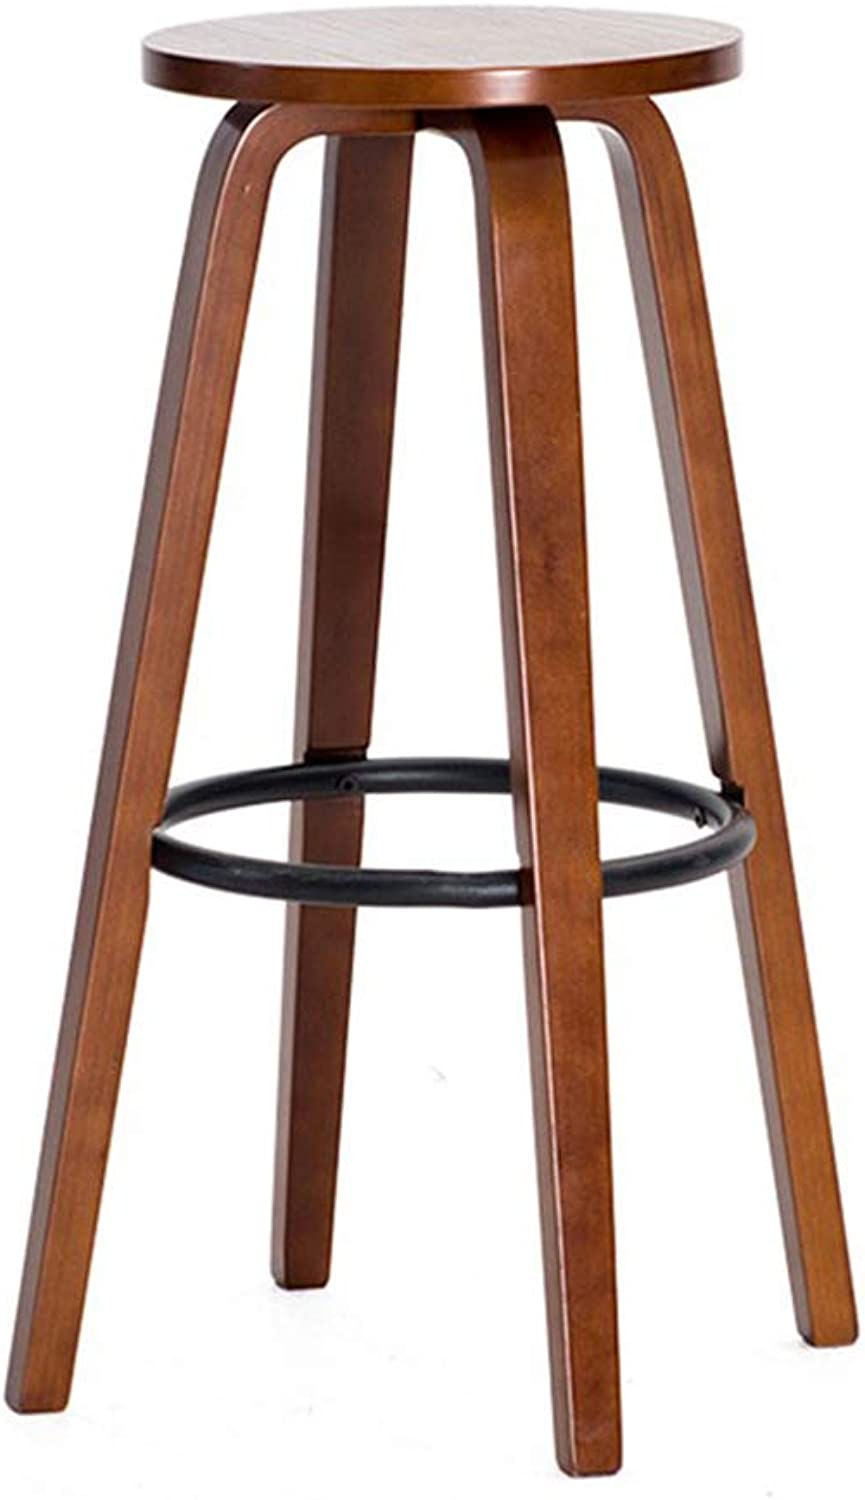 Retro Round Stool Bar Stool High Bench Bar Chair Wood Bar Desk Chair Household Kitchen High Stool   for 100-110cm Table  Brown